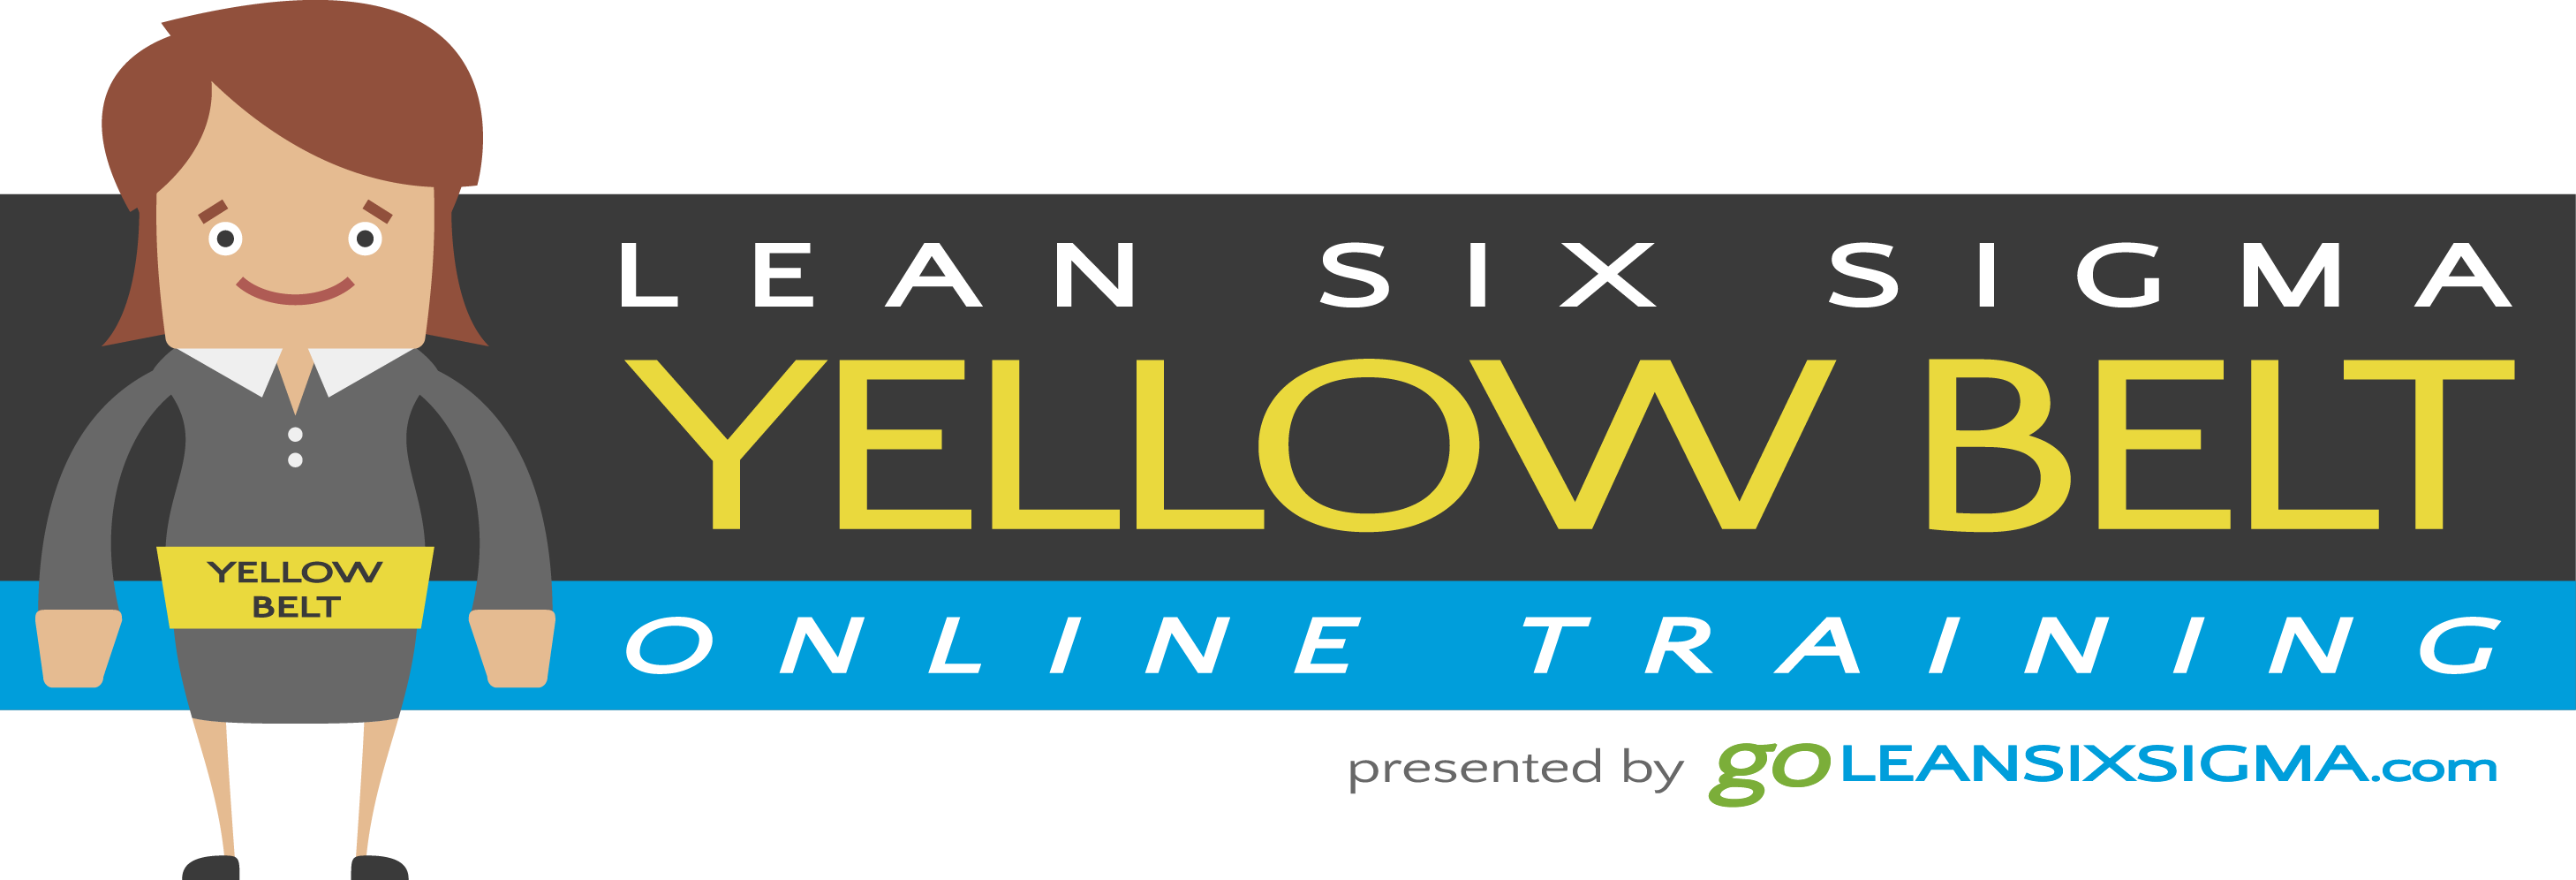 Free Lean Six Sigma Training Yellow Belt From Goleansixsigma Com